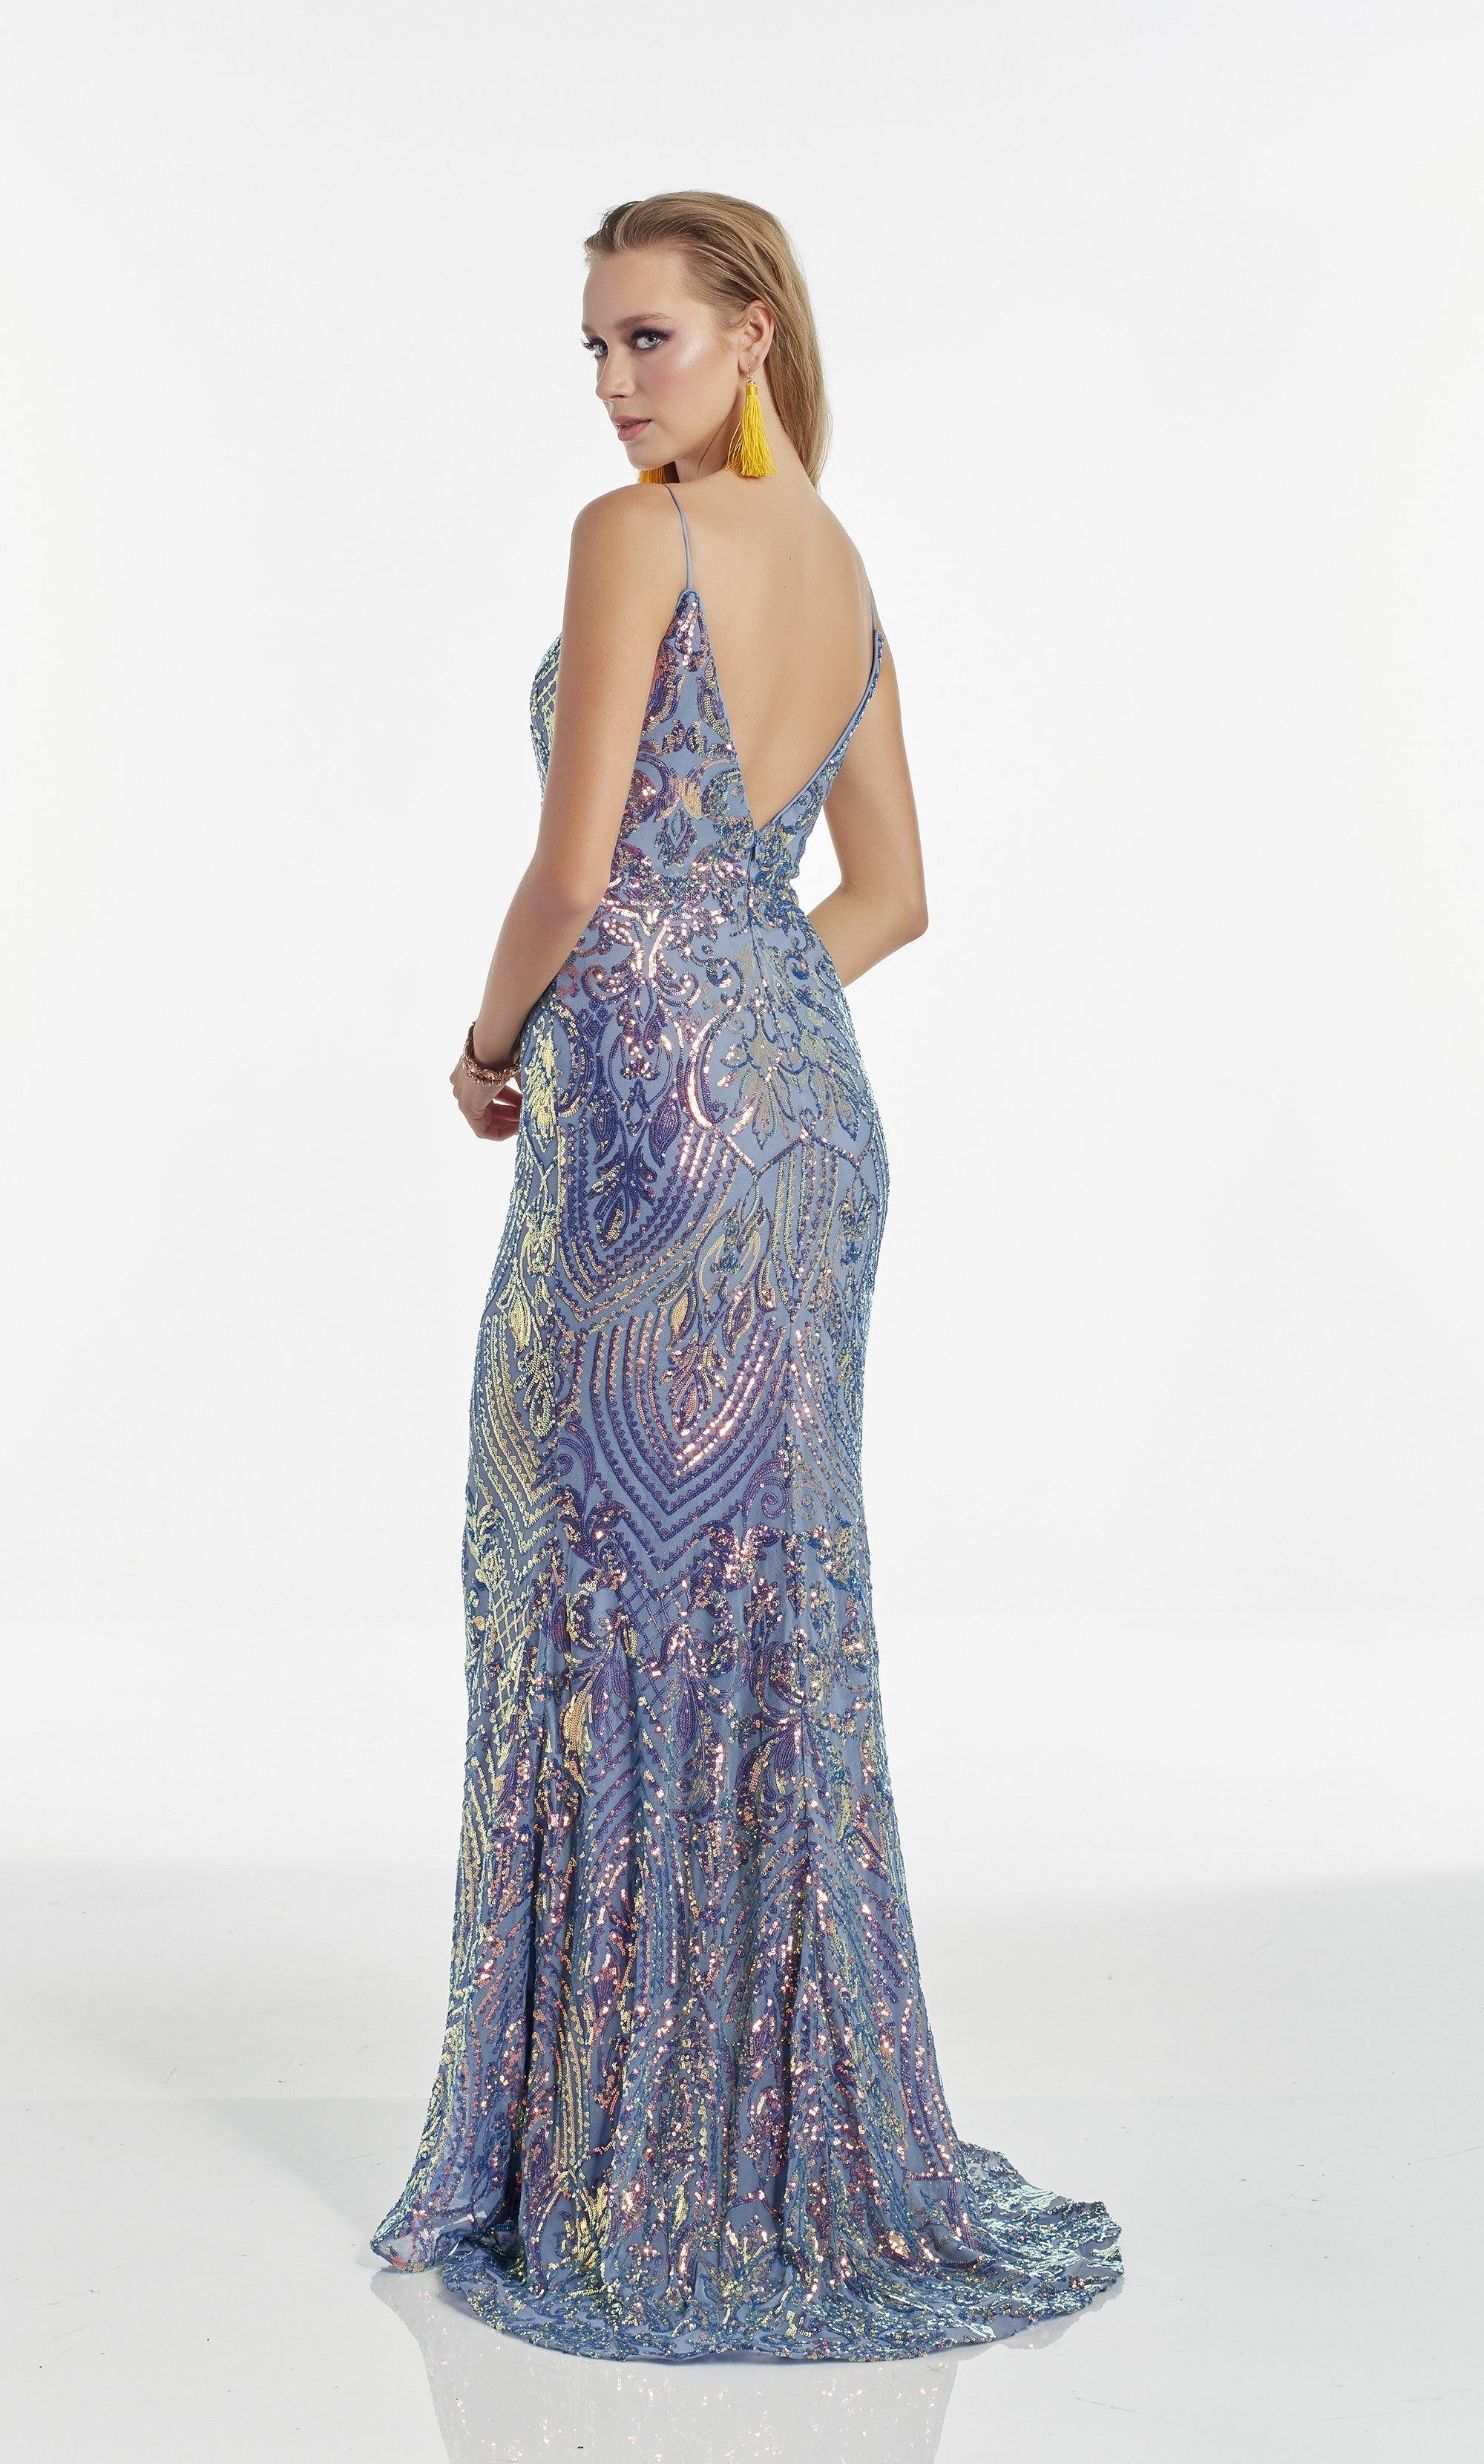 Iridescent Violet sequin fit and flare prom dress with a sweetheart neckline